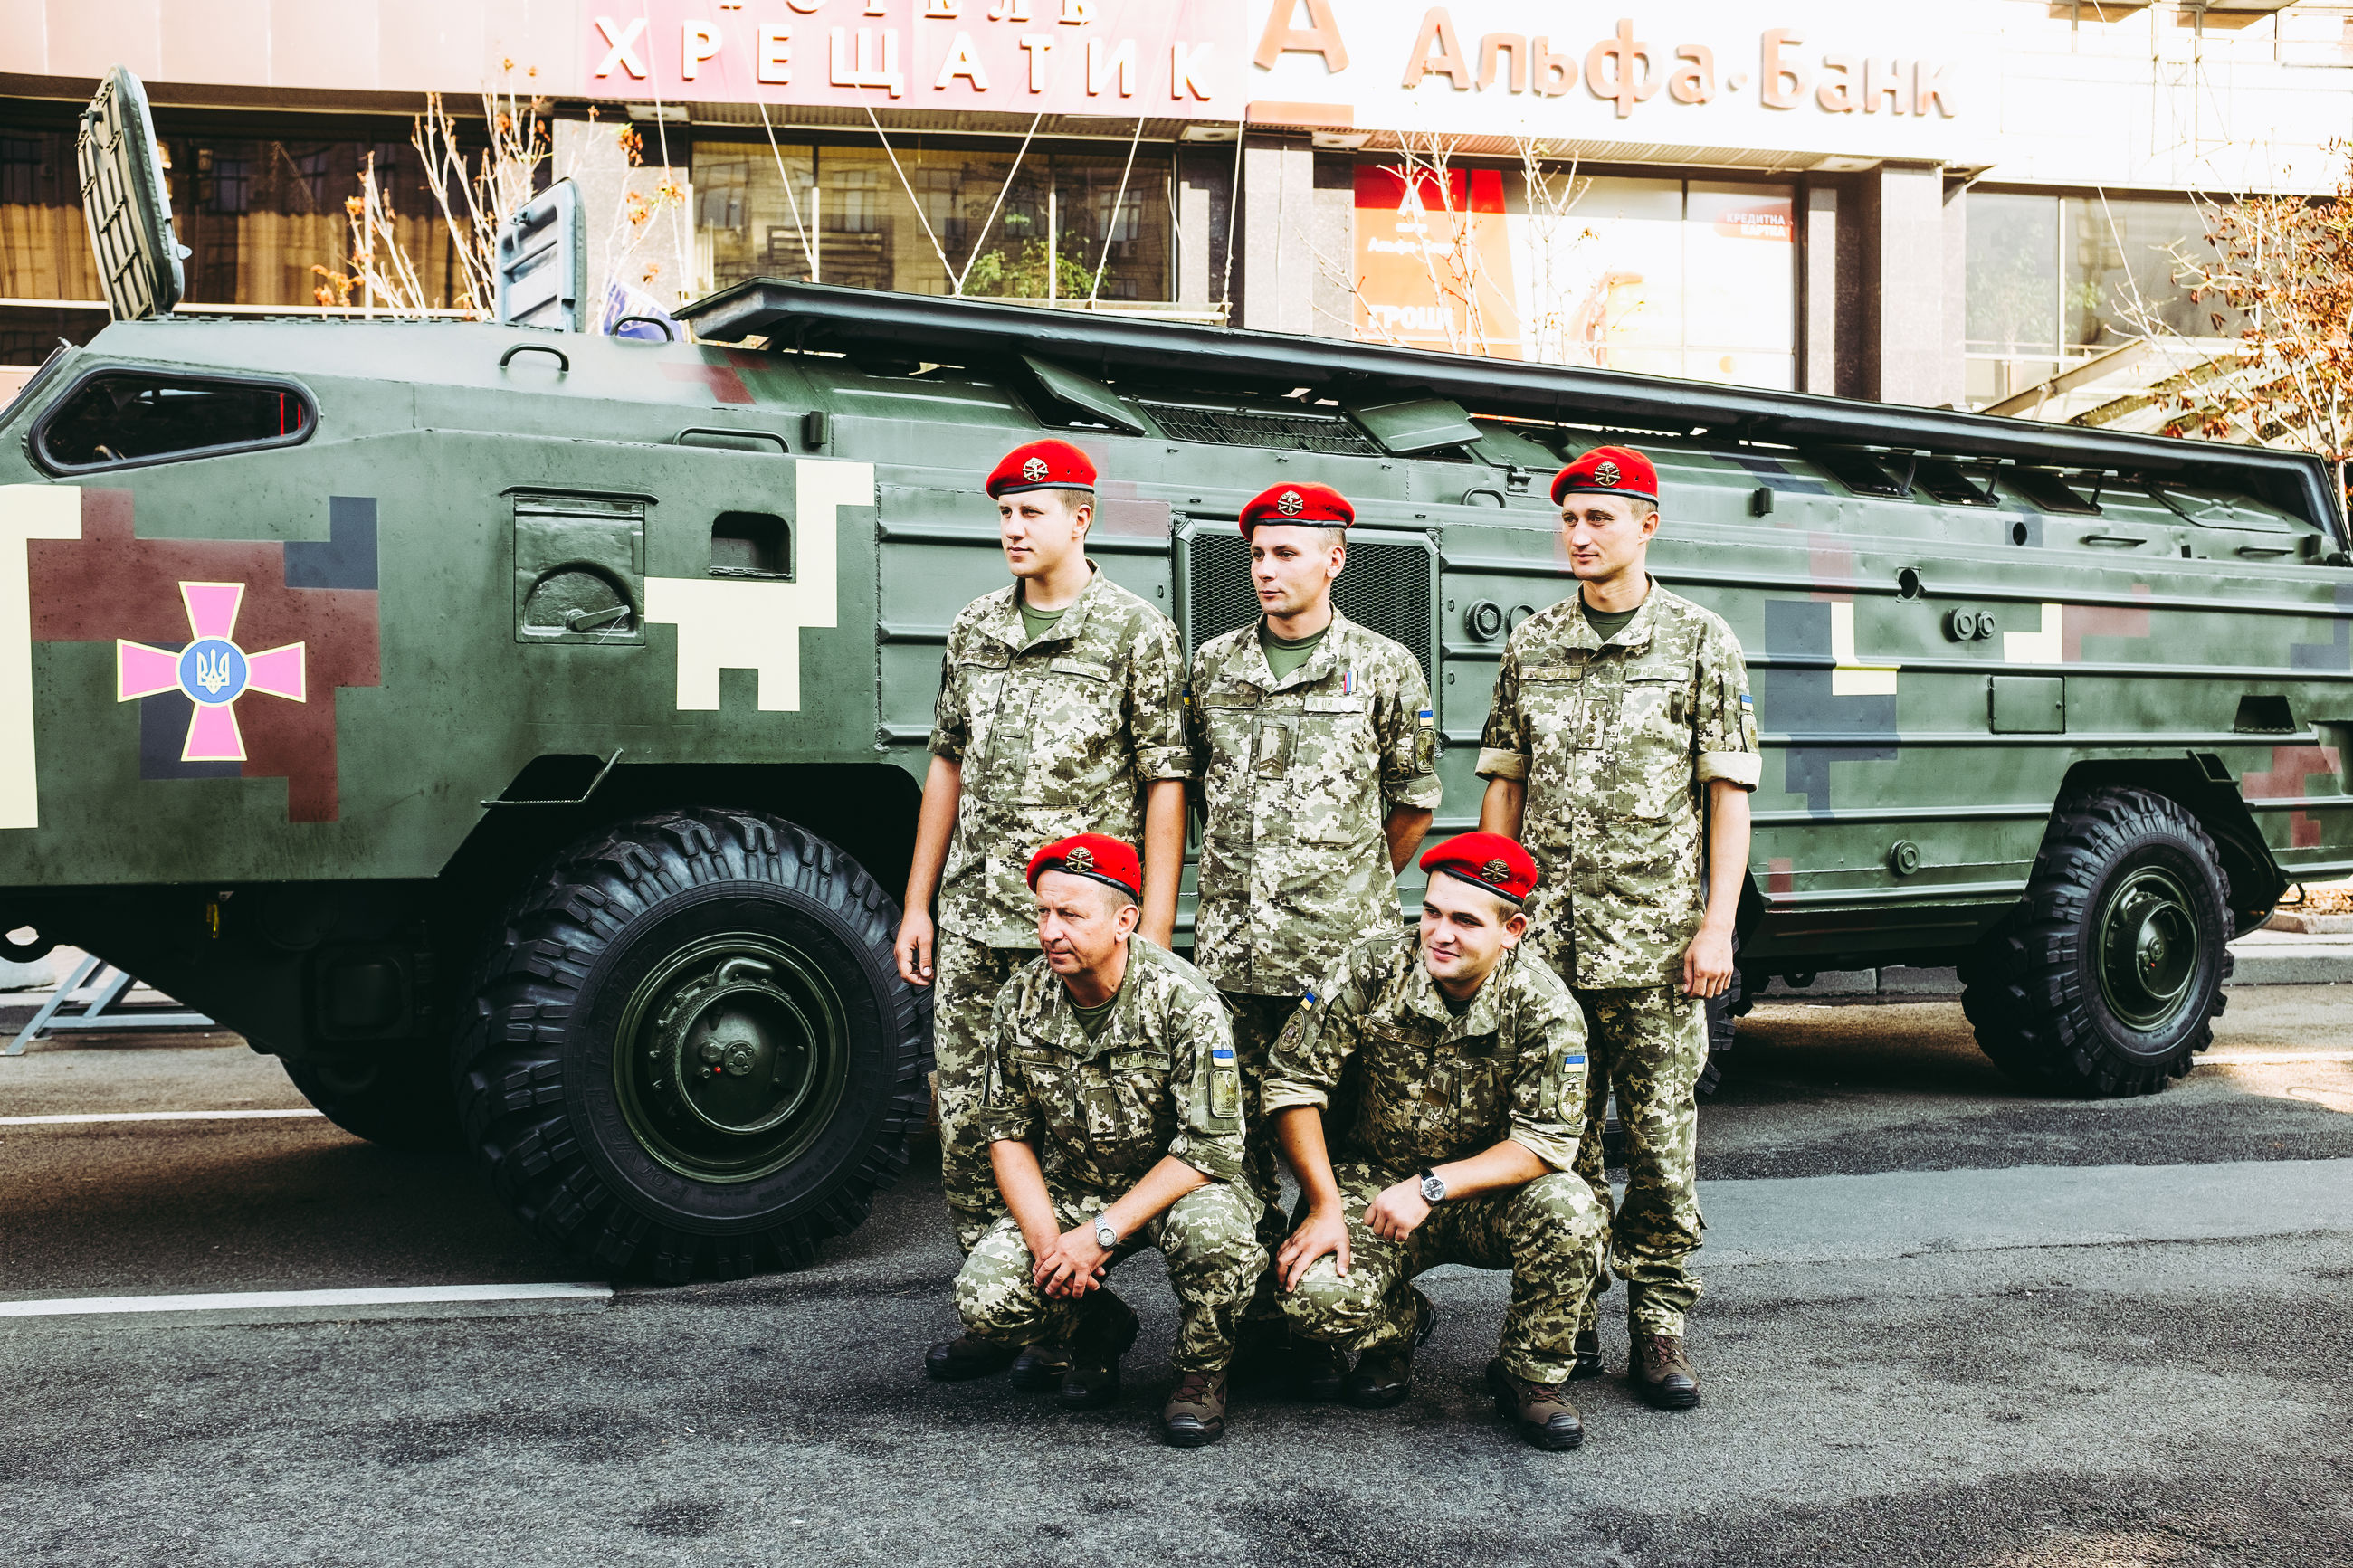 uniform, military uniform, army soldier, army, heroes, military, camouflage clothing, transportation, real people, men, armed forces, standing, young adult, patriotism, day, cap, looking at camera, full length, outdoors, mode of transport, courage, road, protection, portrait, occupation, responsibility, young men, land vehicle, stationary, pride, young women, teamwork, building exterior, one person, adult, people